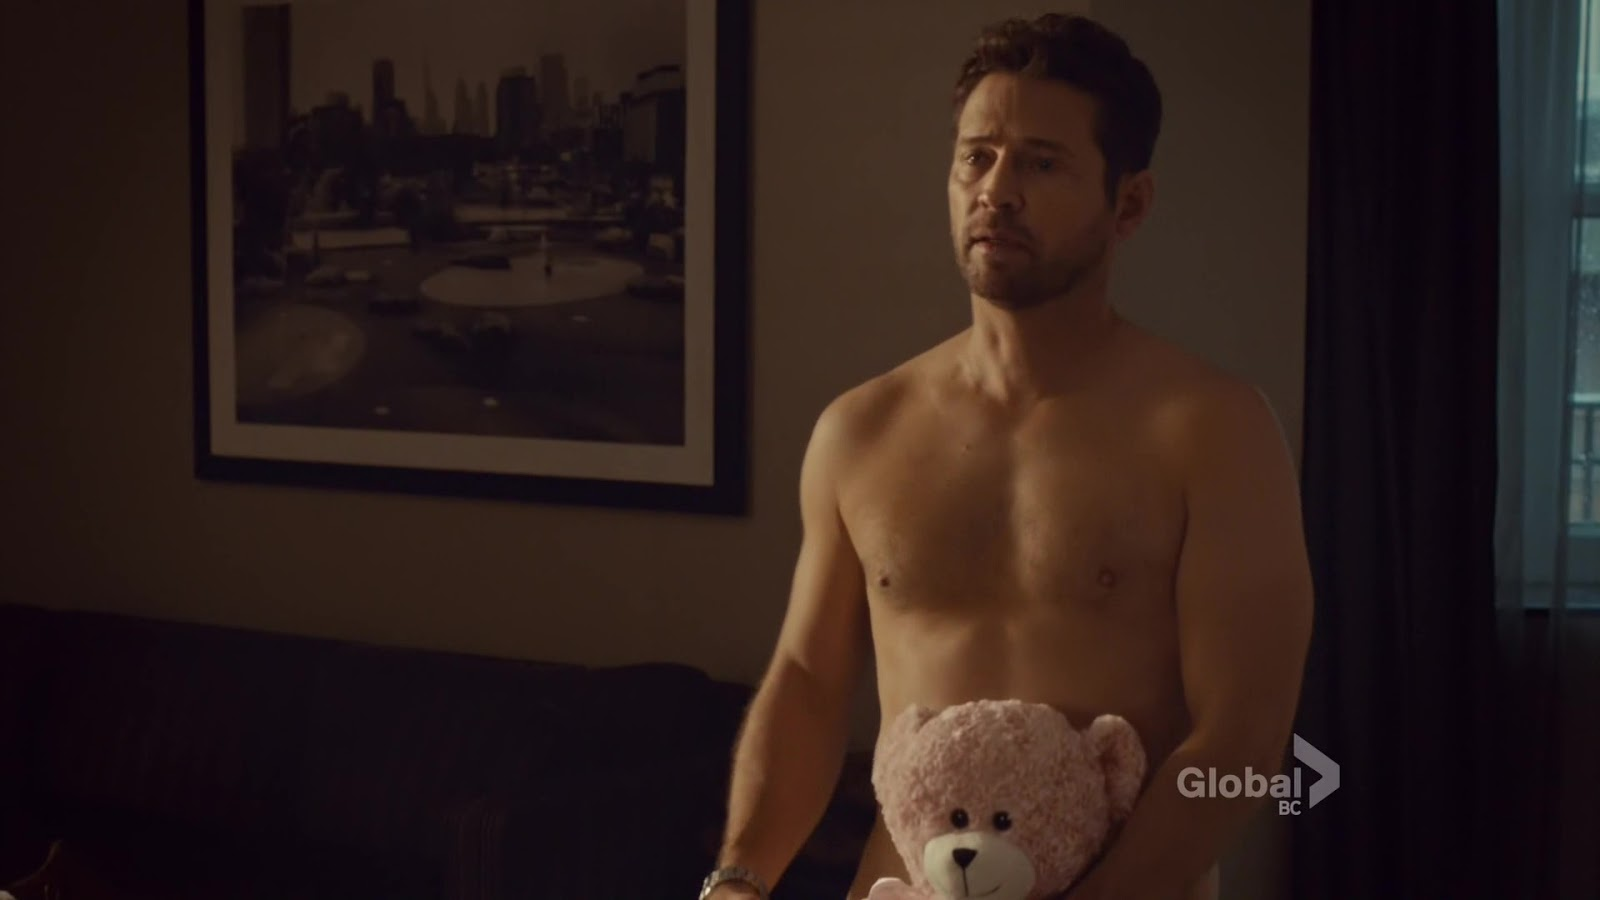 Jason priestley shirtless gay kiss